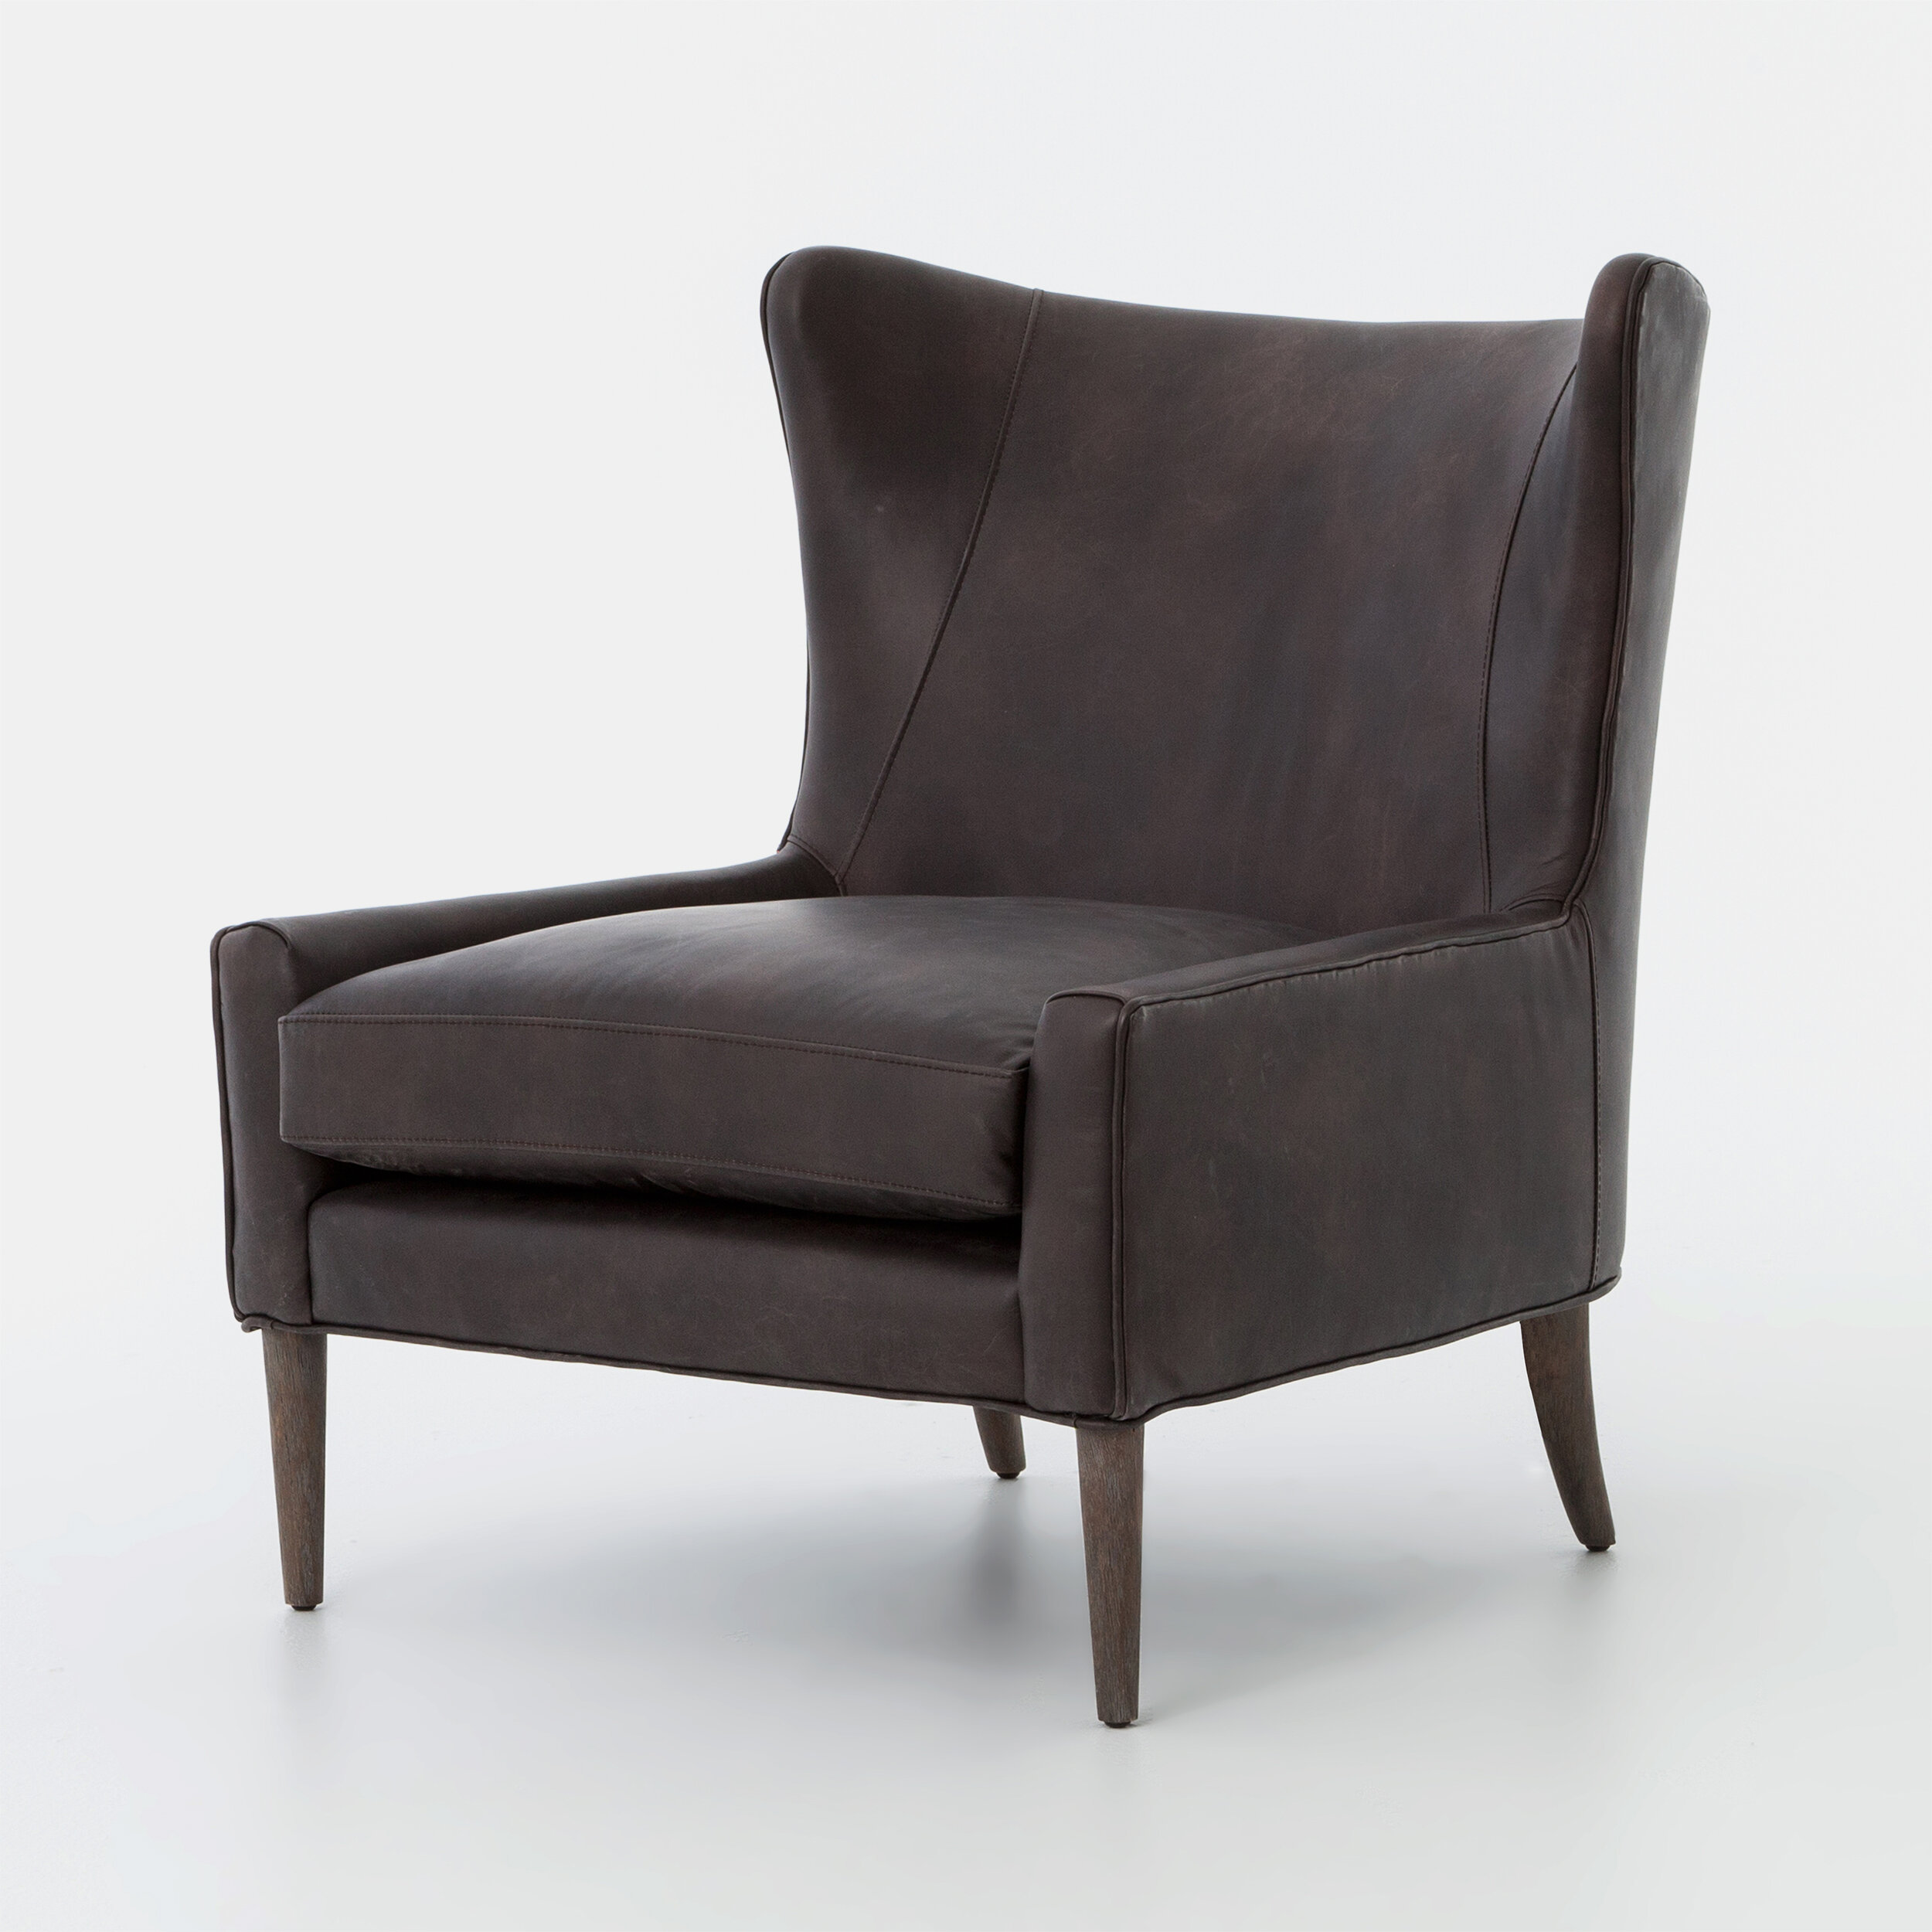 shop-mayker-home-gifting-design-nashville-modern-wing-chair-leather.jpg